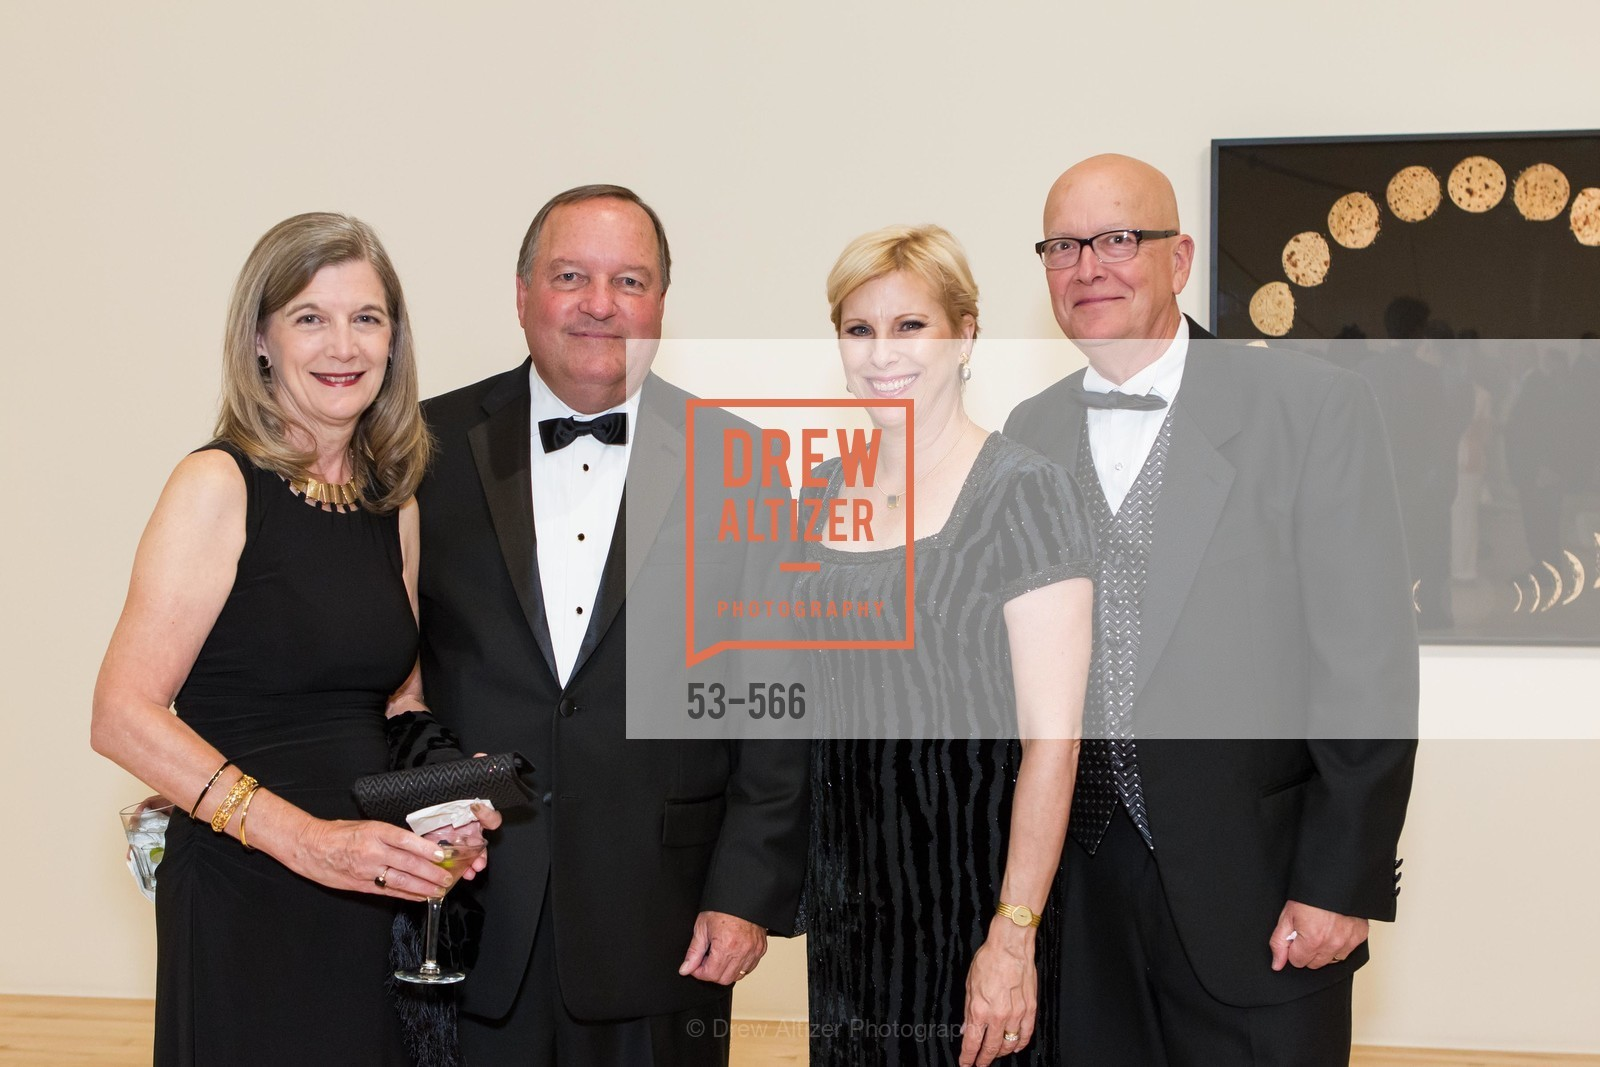 Jackie Faulkner, William Faulkner, Glenda Dorchak, Gary Dorchak, SAN JOSE MUSEUM OF ART'S Spectrum Gala - 45th Anniversary, US, September 13th, 2014